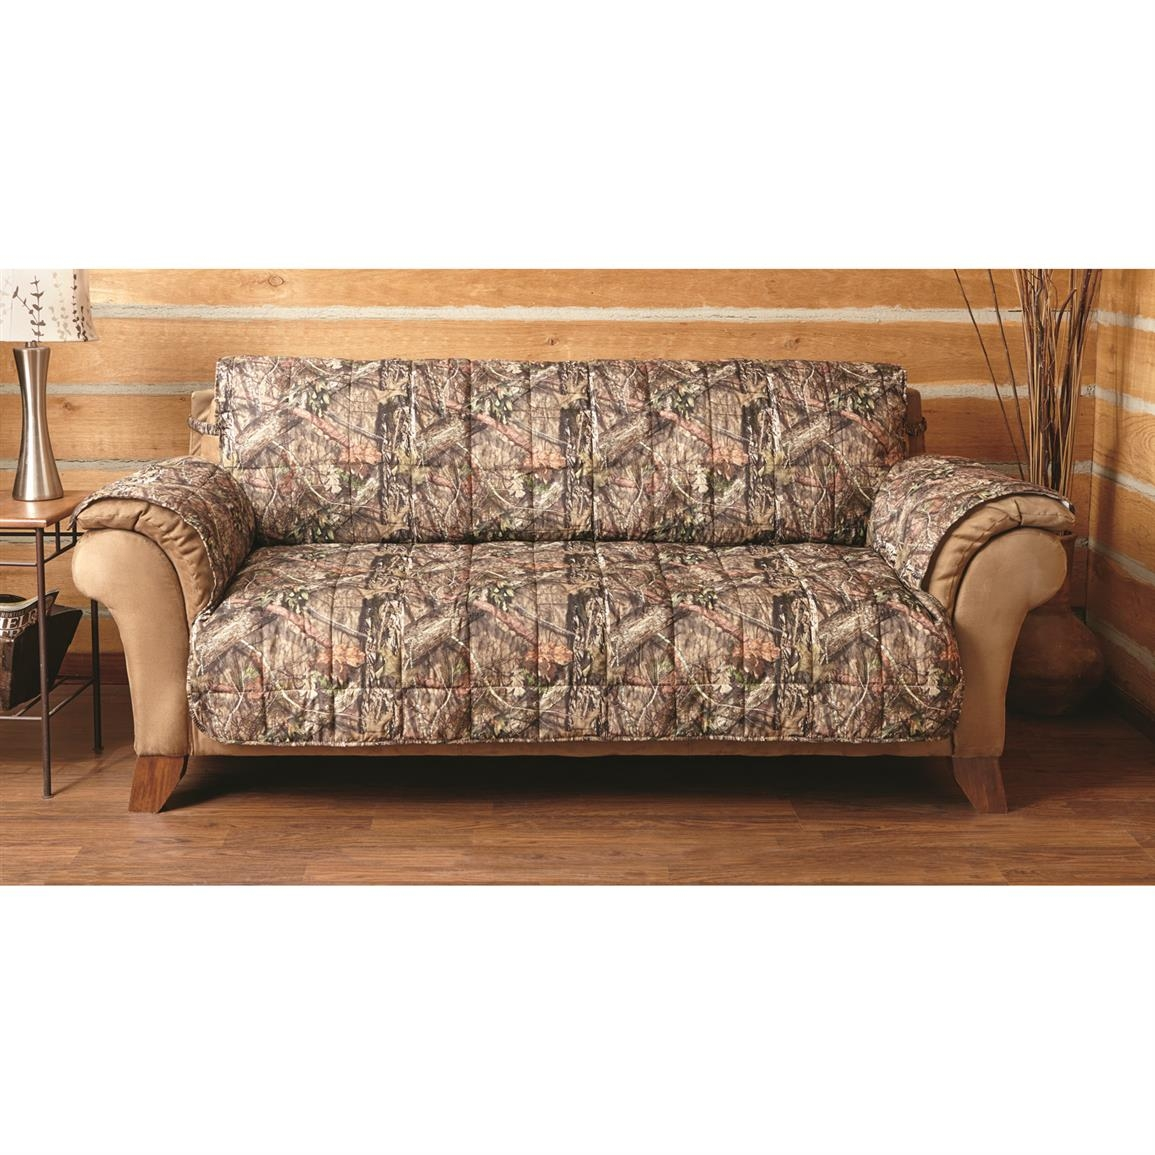 Mossy Oak Camo Furniture Covers 647980 Furniture Covers At Within Camo Sofa Cover (Image 14 of 15)